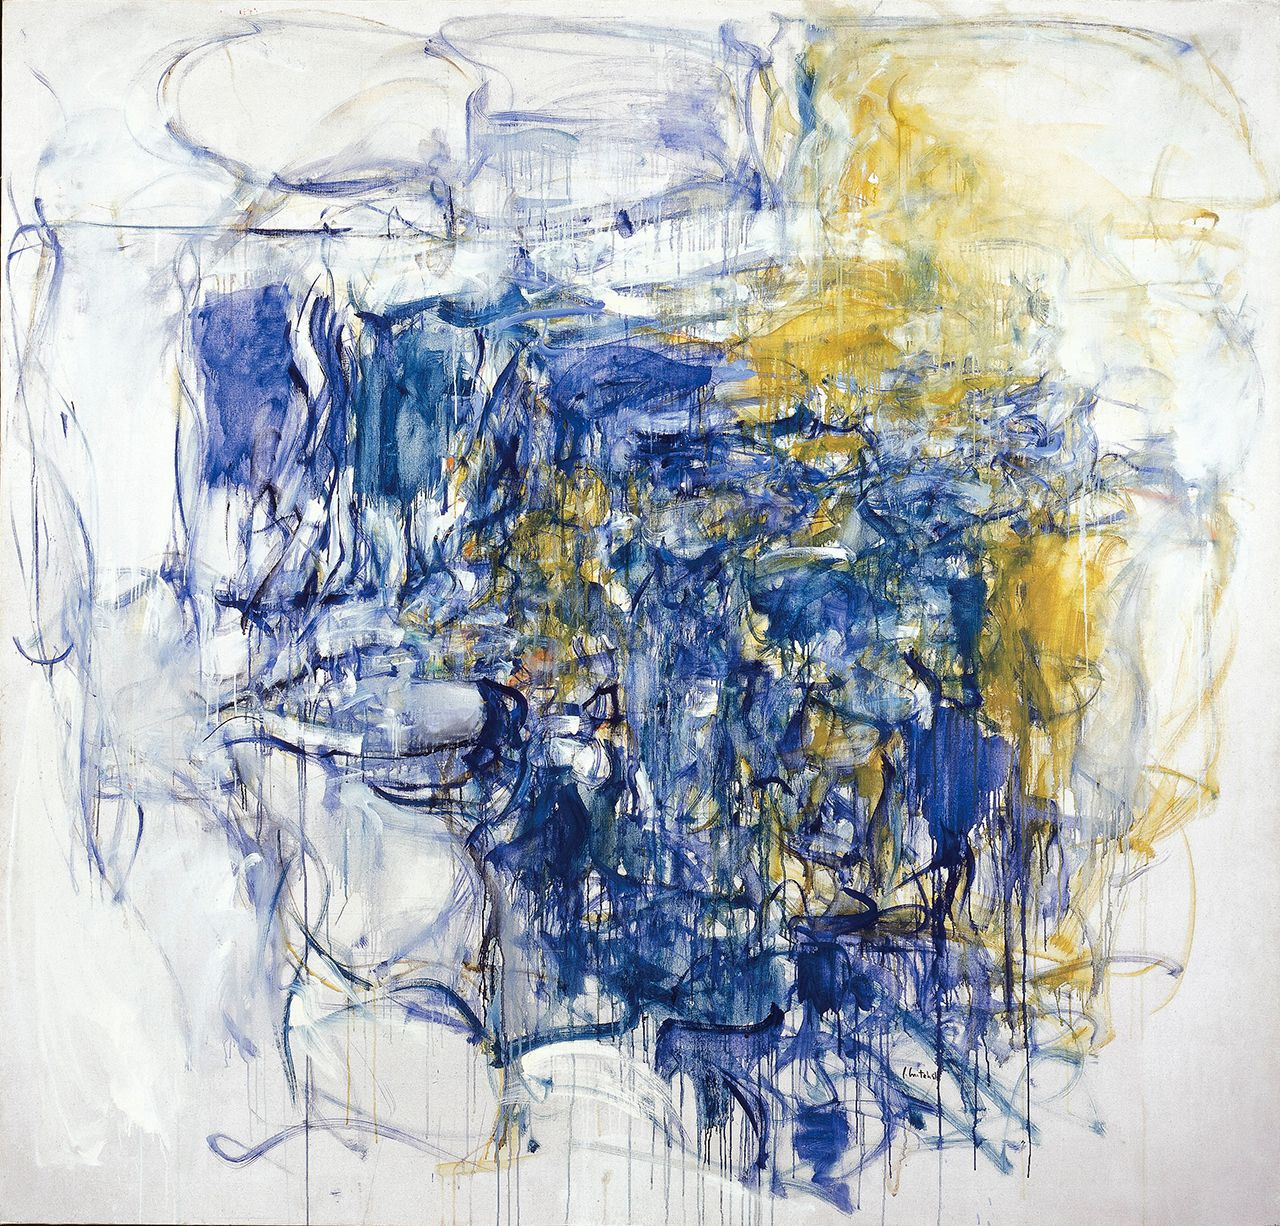 """Joan Mitchell, """"Hudson River Day Line"""" (1955), oil paint on canvas, 79 x 83 in, Collection of the McNay Art Museum, Museum: purchase with funds from the Tobin Foundation (image © Estate of Joan Mitchell)"""